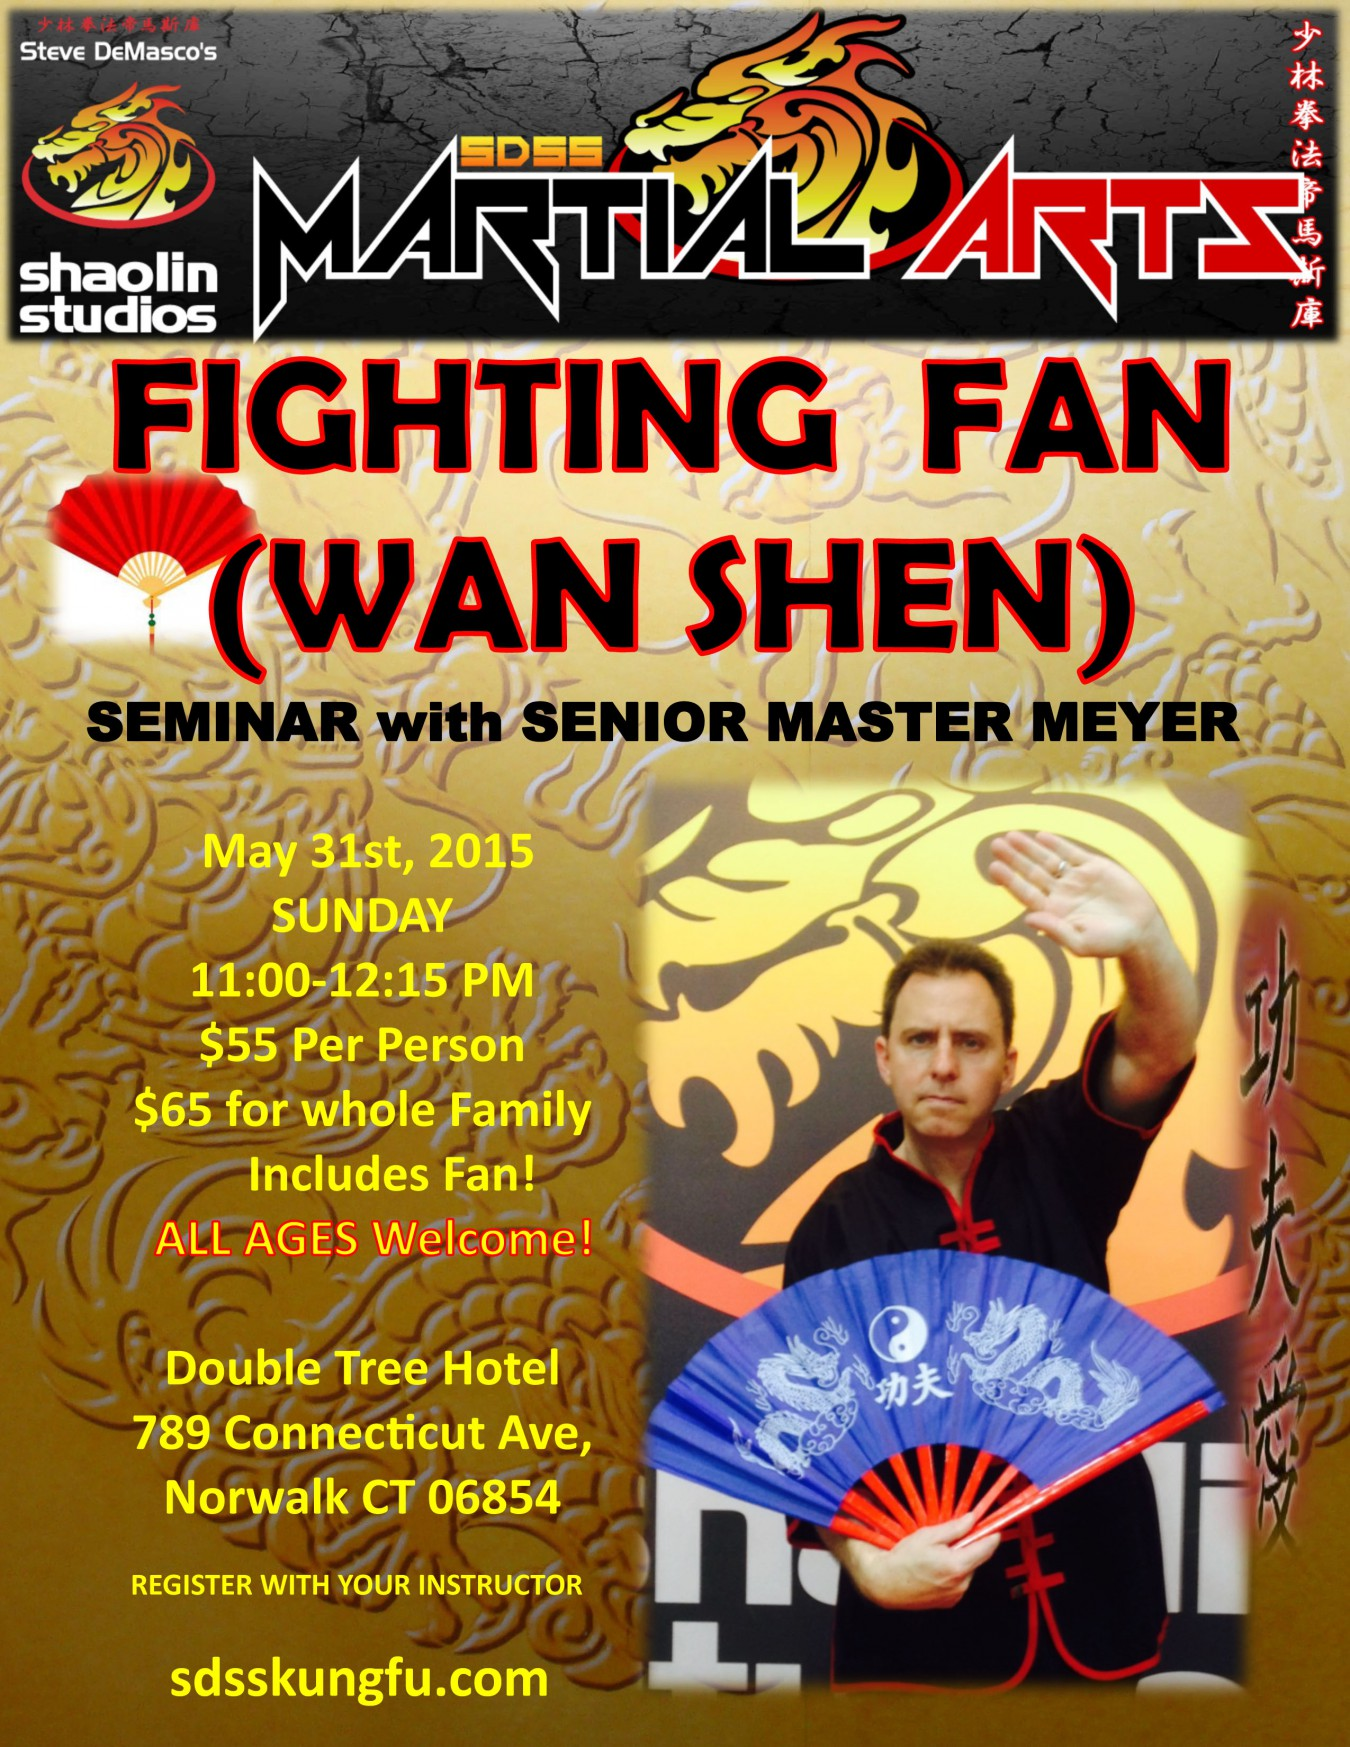 FIGHTING FAN 2015